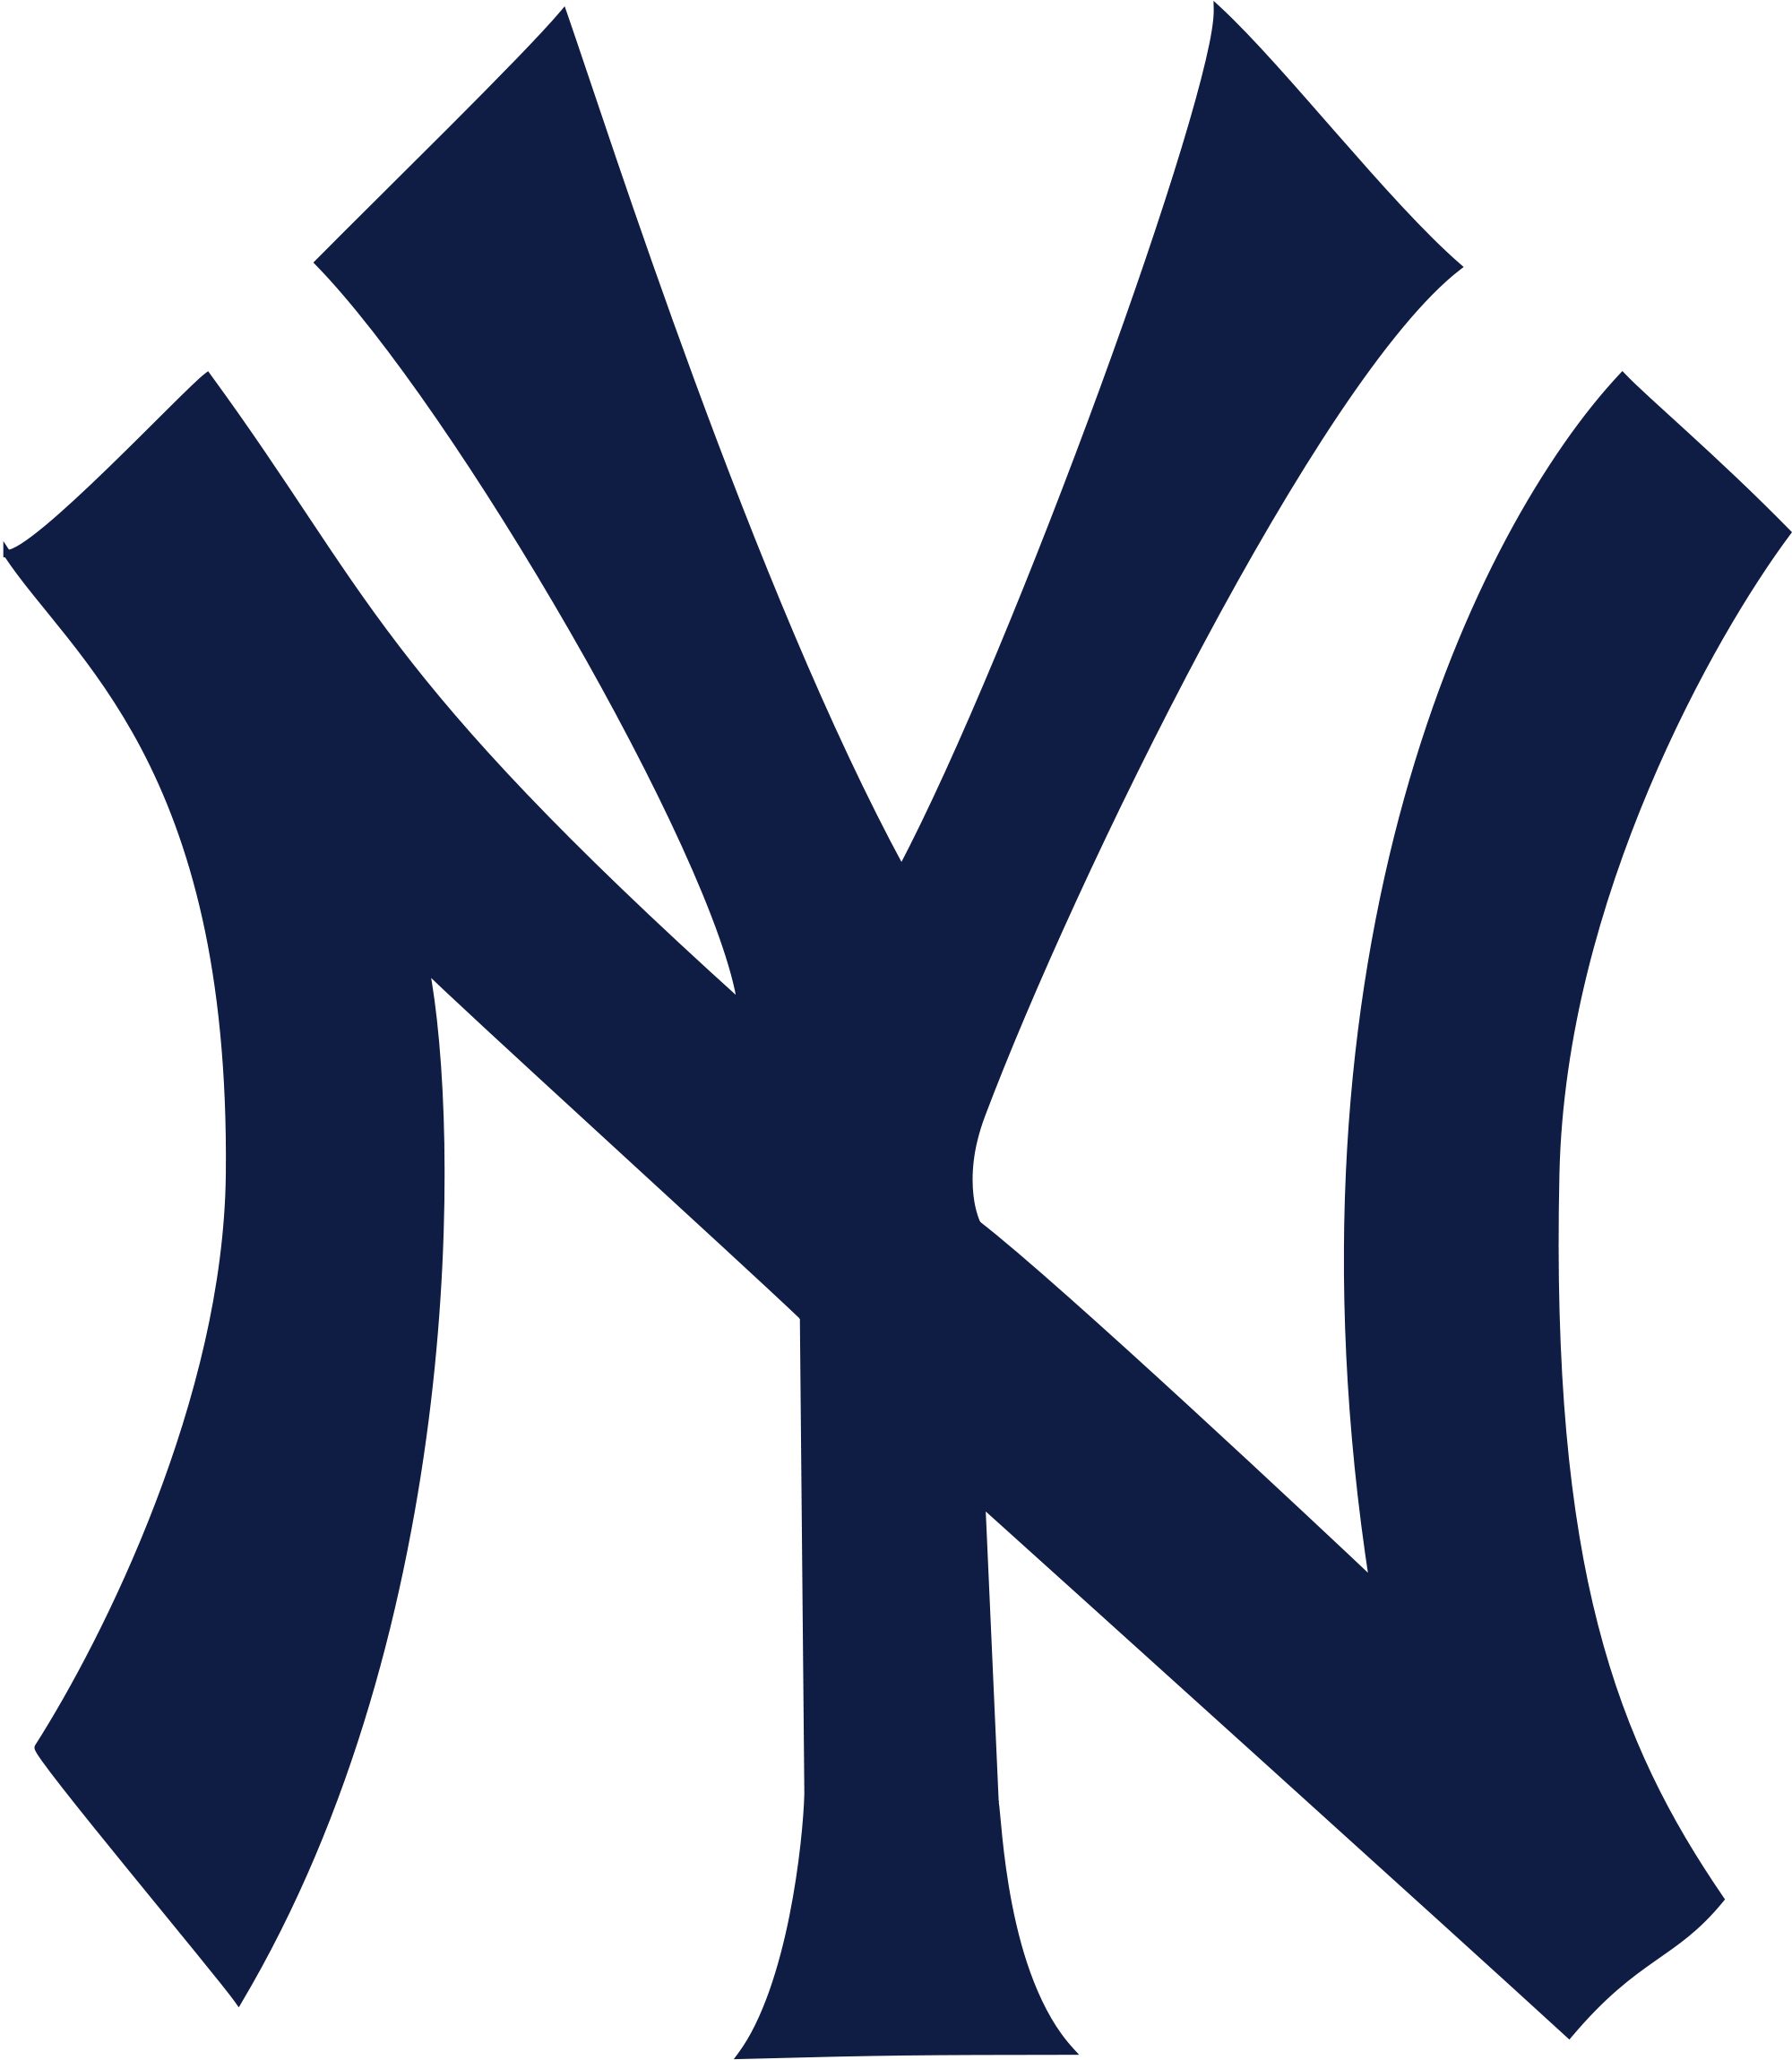 New york yankees logo png. File svg wikimedia commons